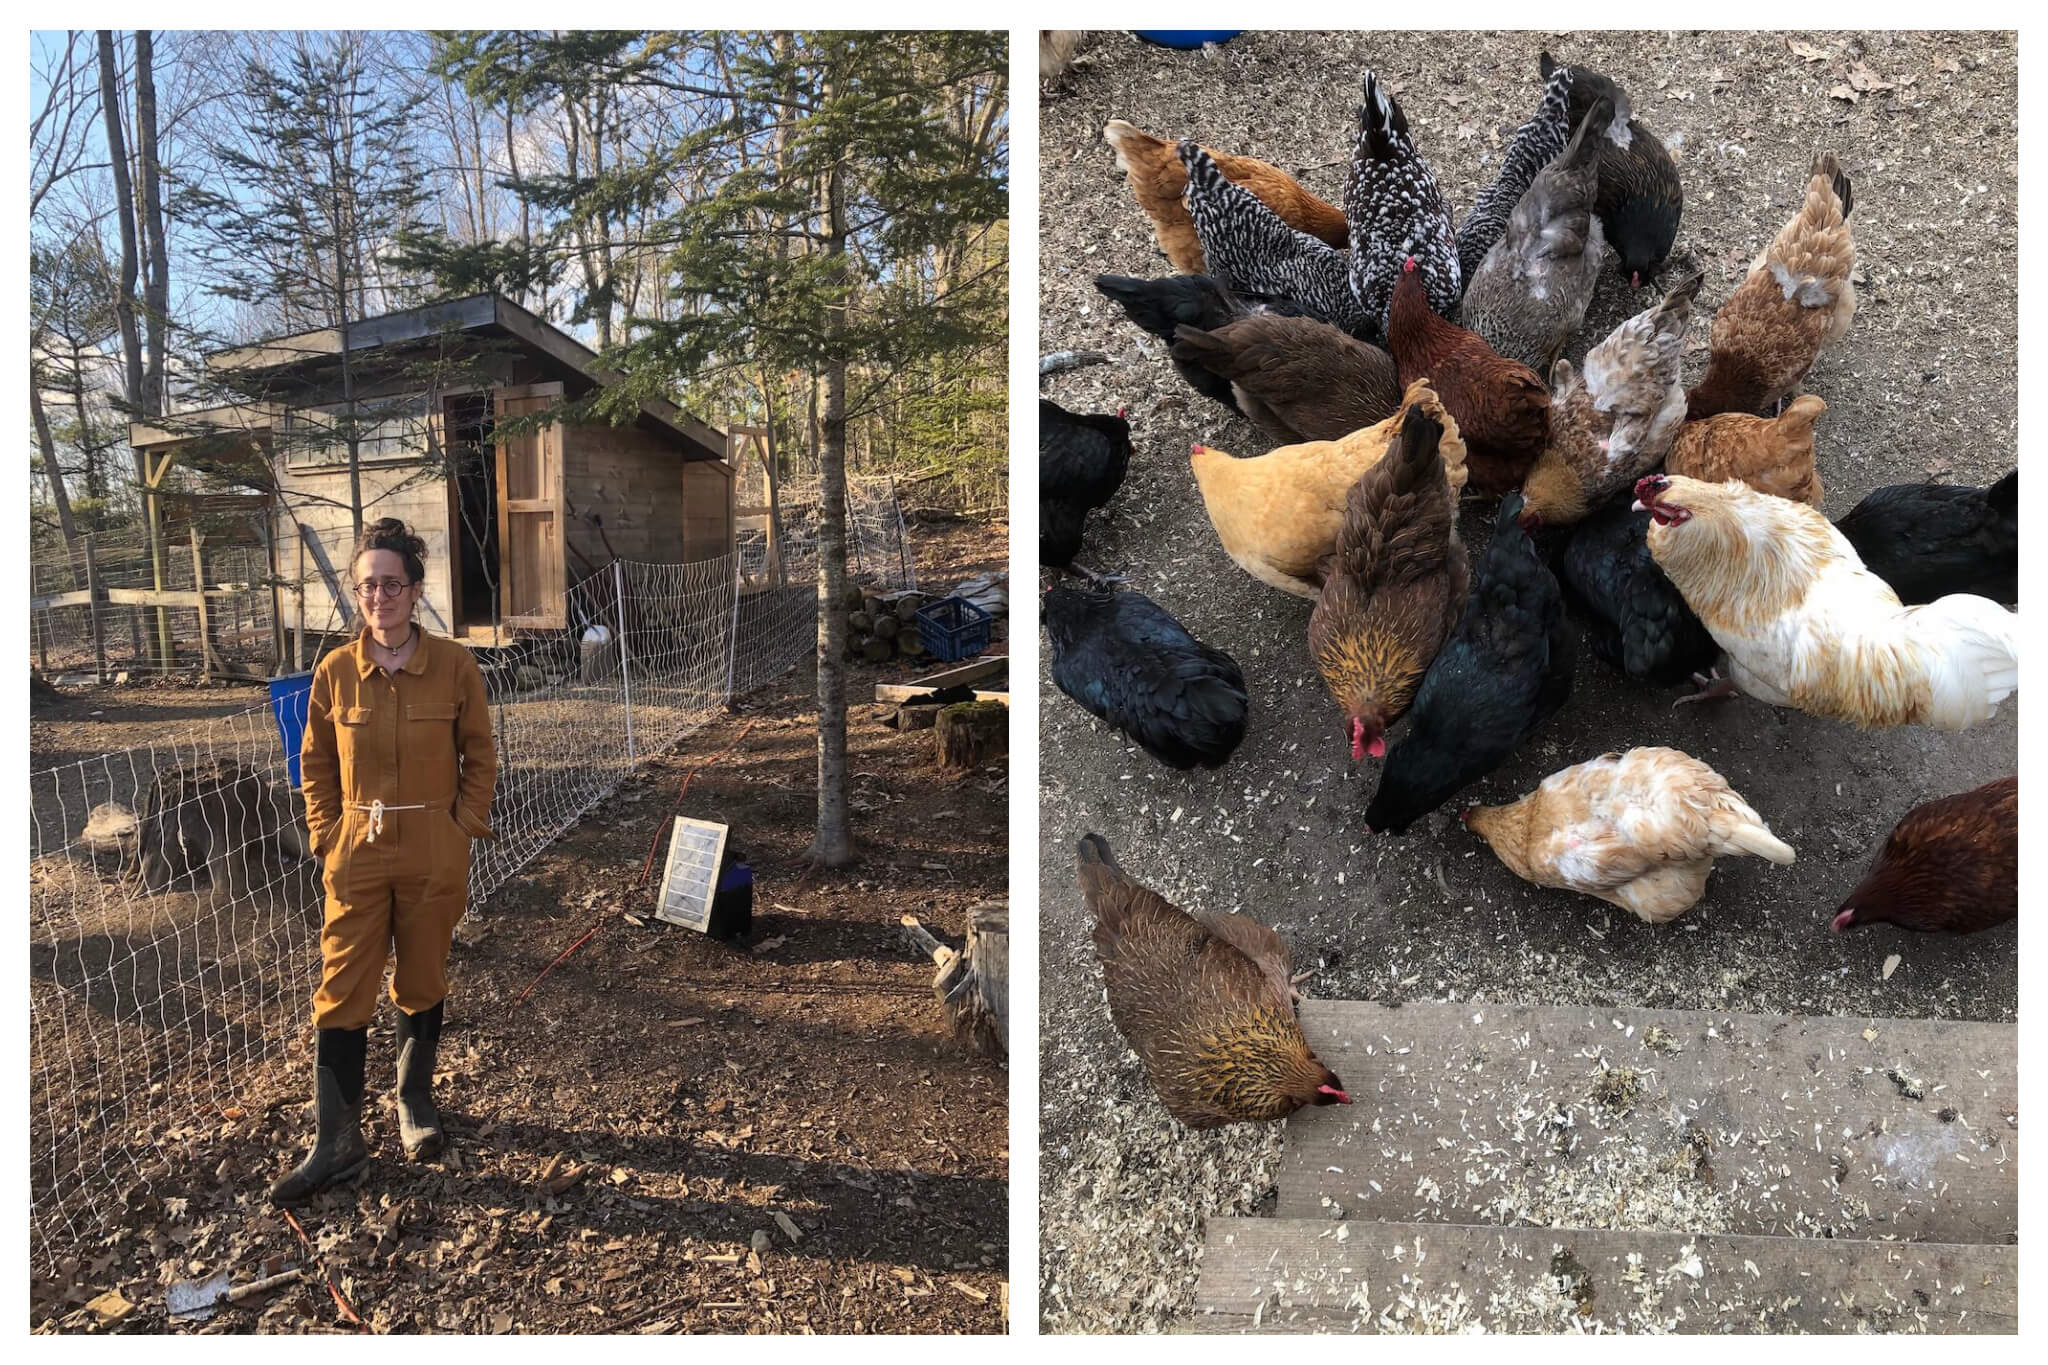 Left: Erica stands near the chicken coop on her farm in Maine. Right: Erica's chickens gather to eat on her farm in Maine.